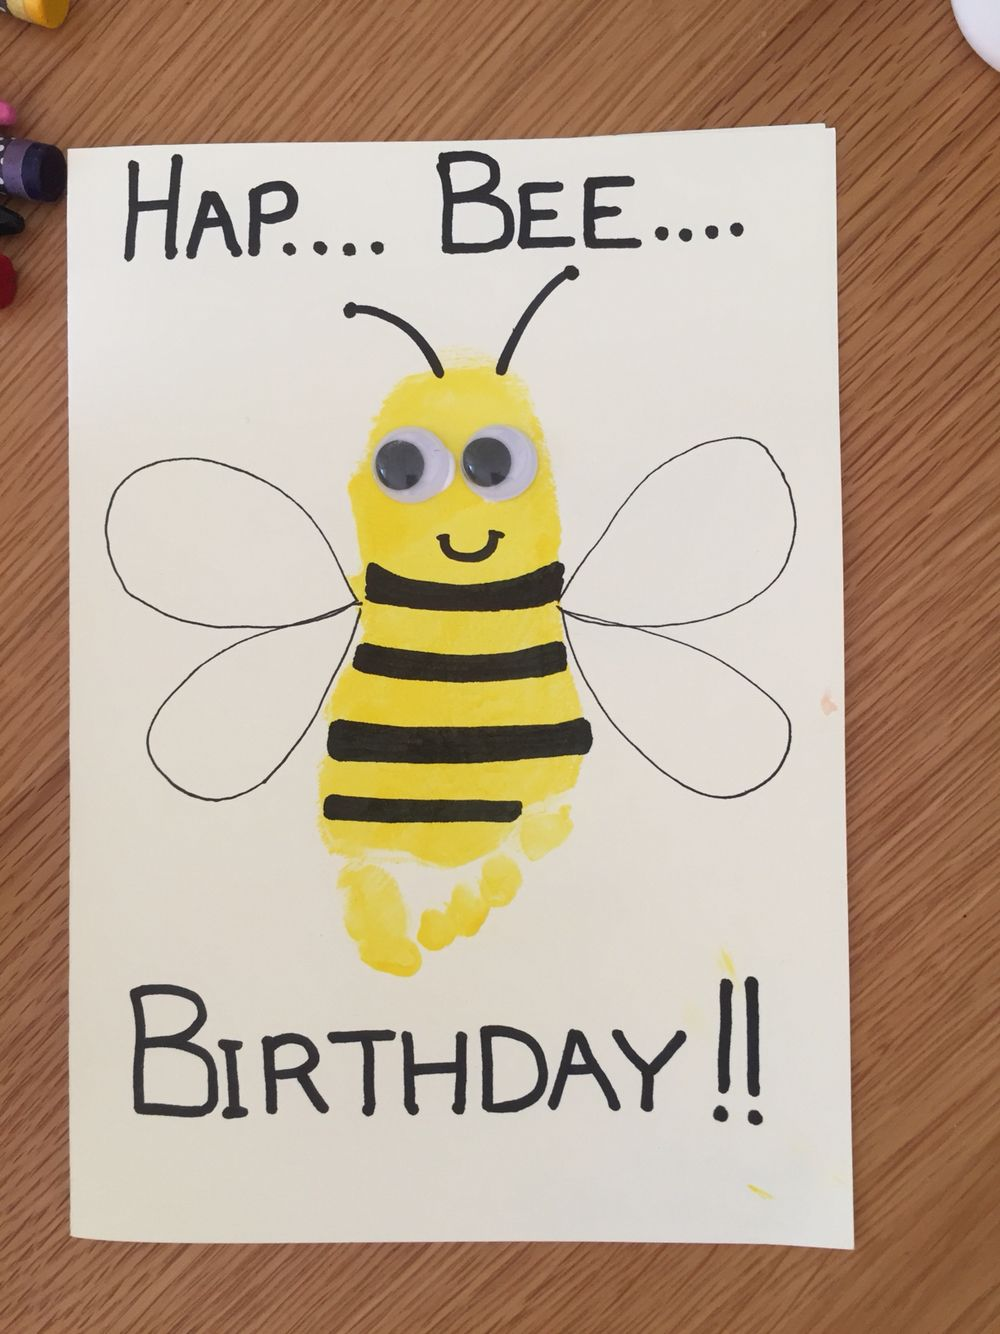 HapBee Birthday card with toddler footprint and googley